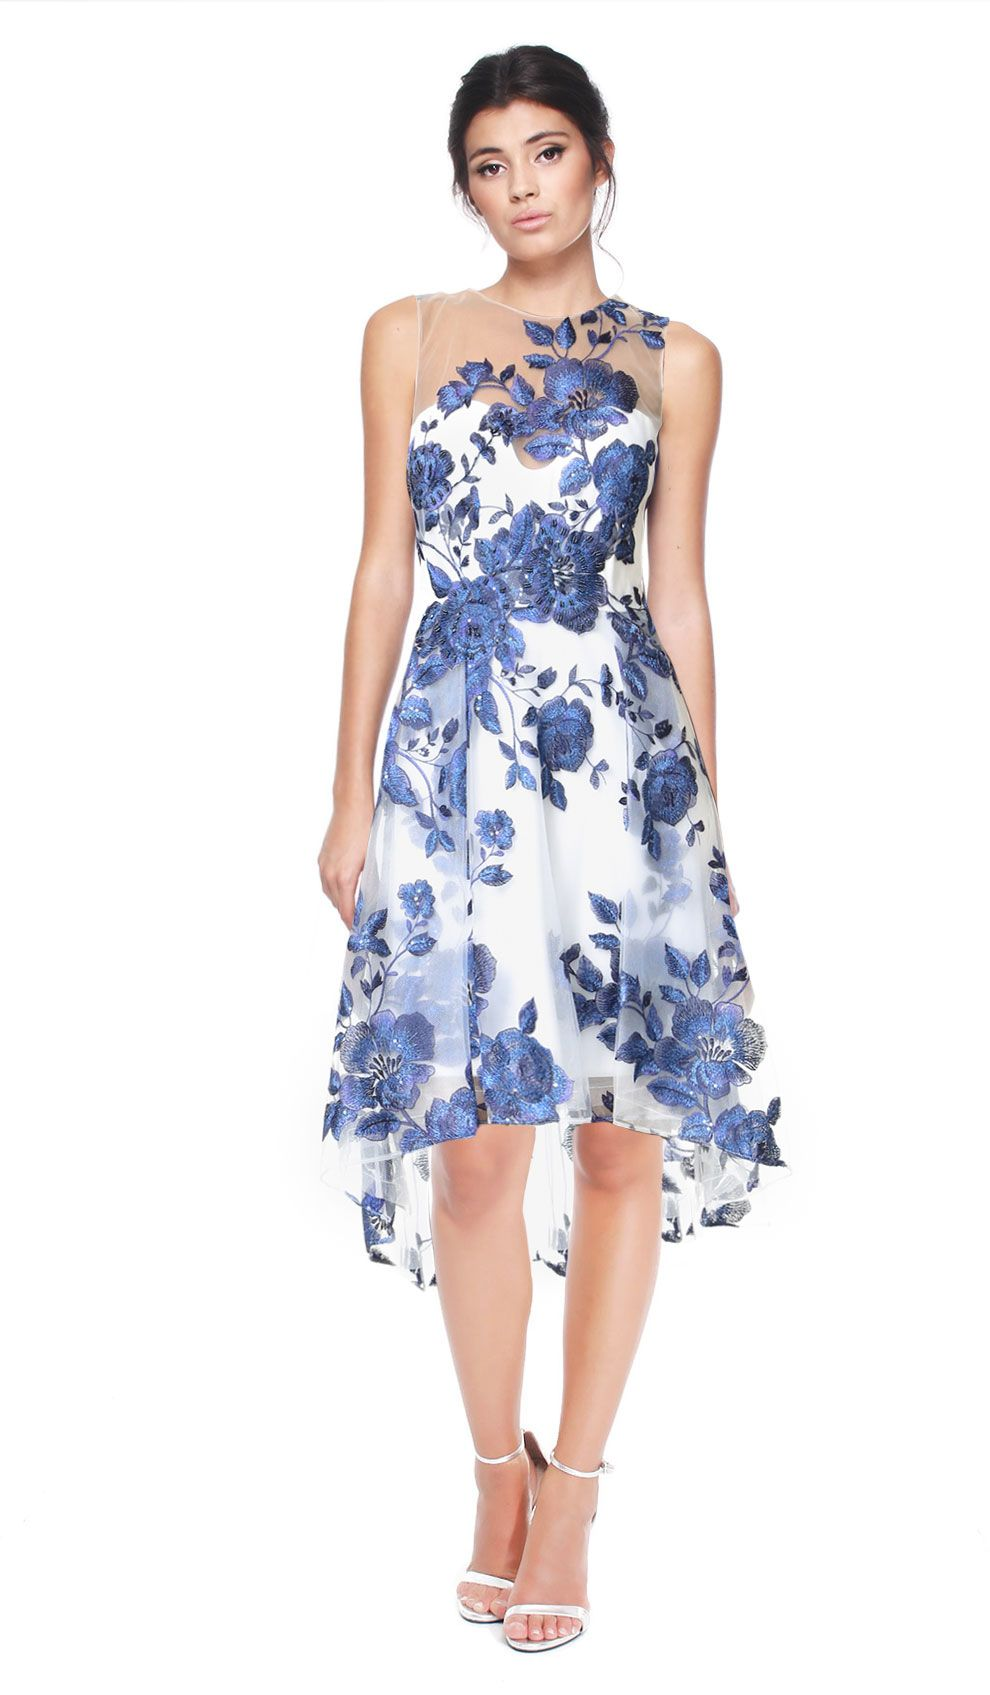 Floral Embroidered Cocktail Dress Hire - Marchesa Notte - Front ...